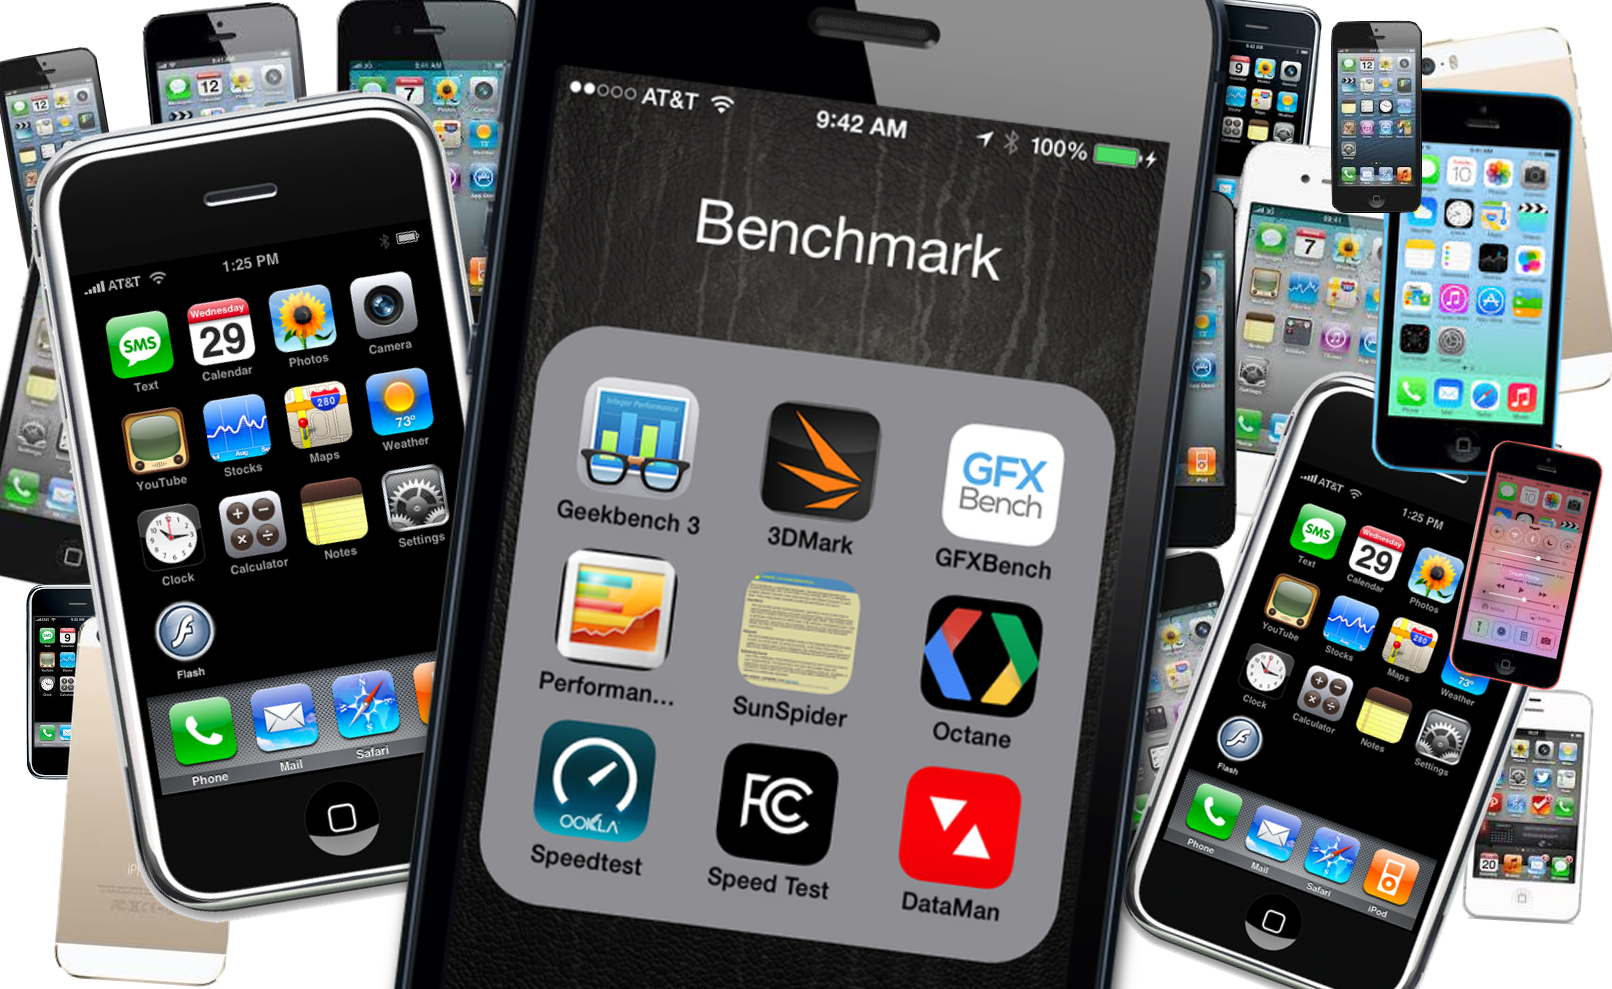 Benchmarking iOS Devices